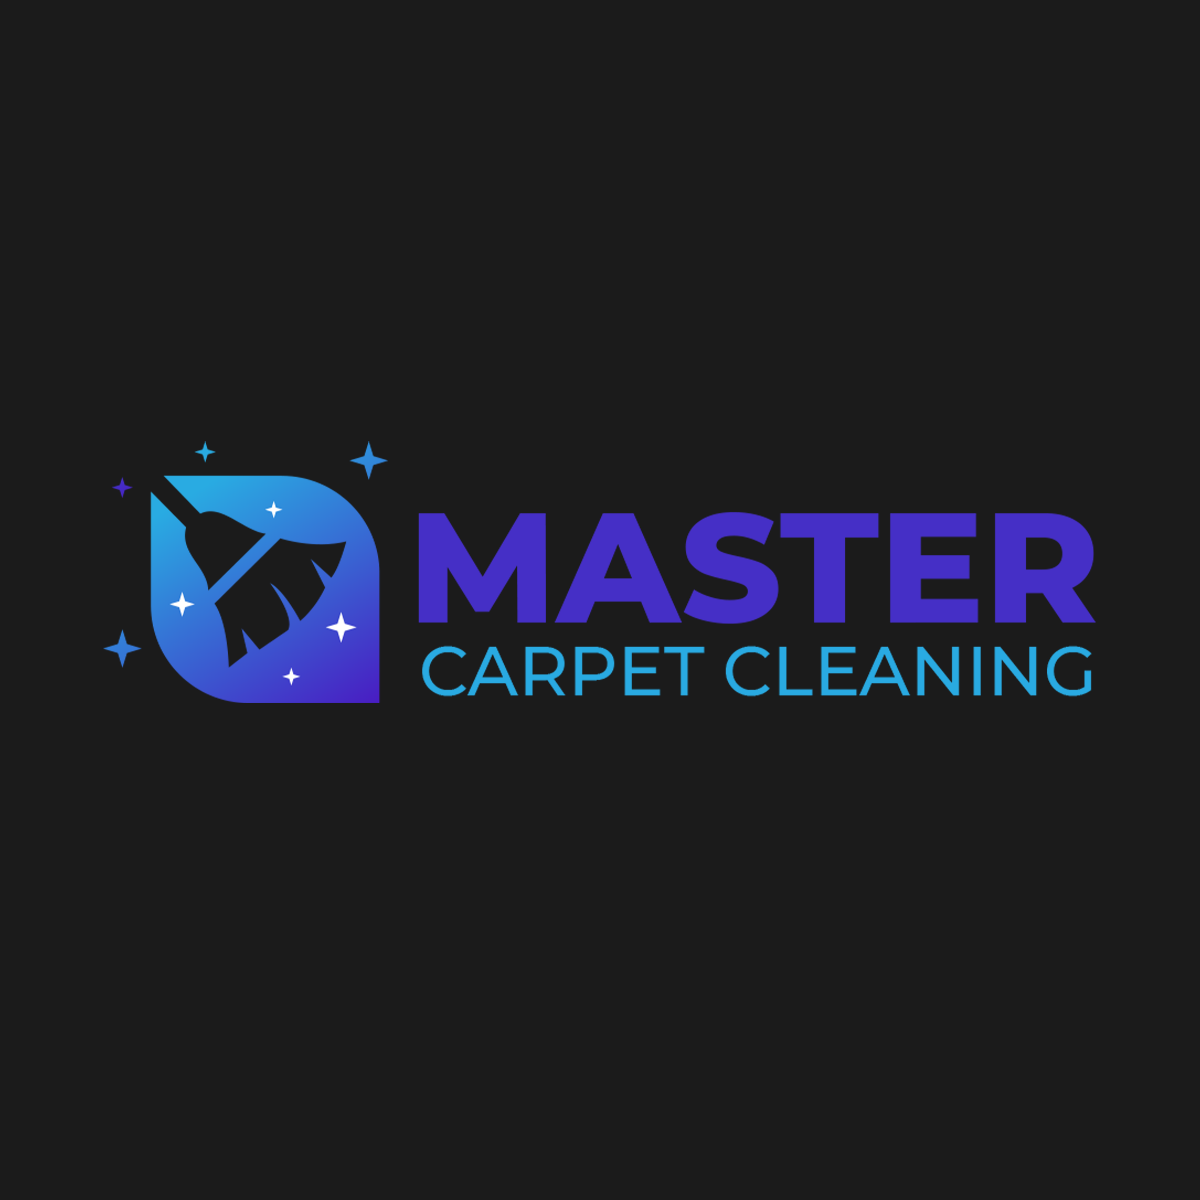 Master Carpet Cleaning